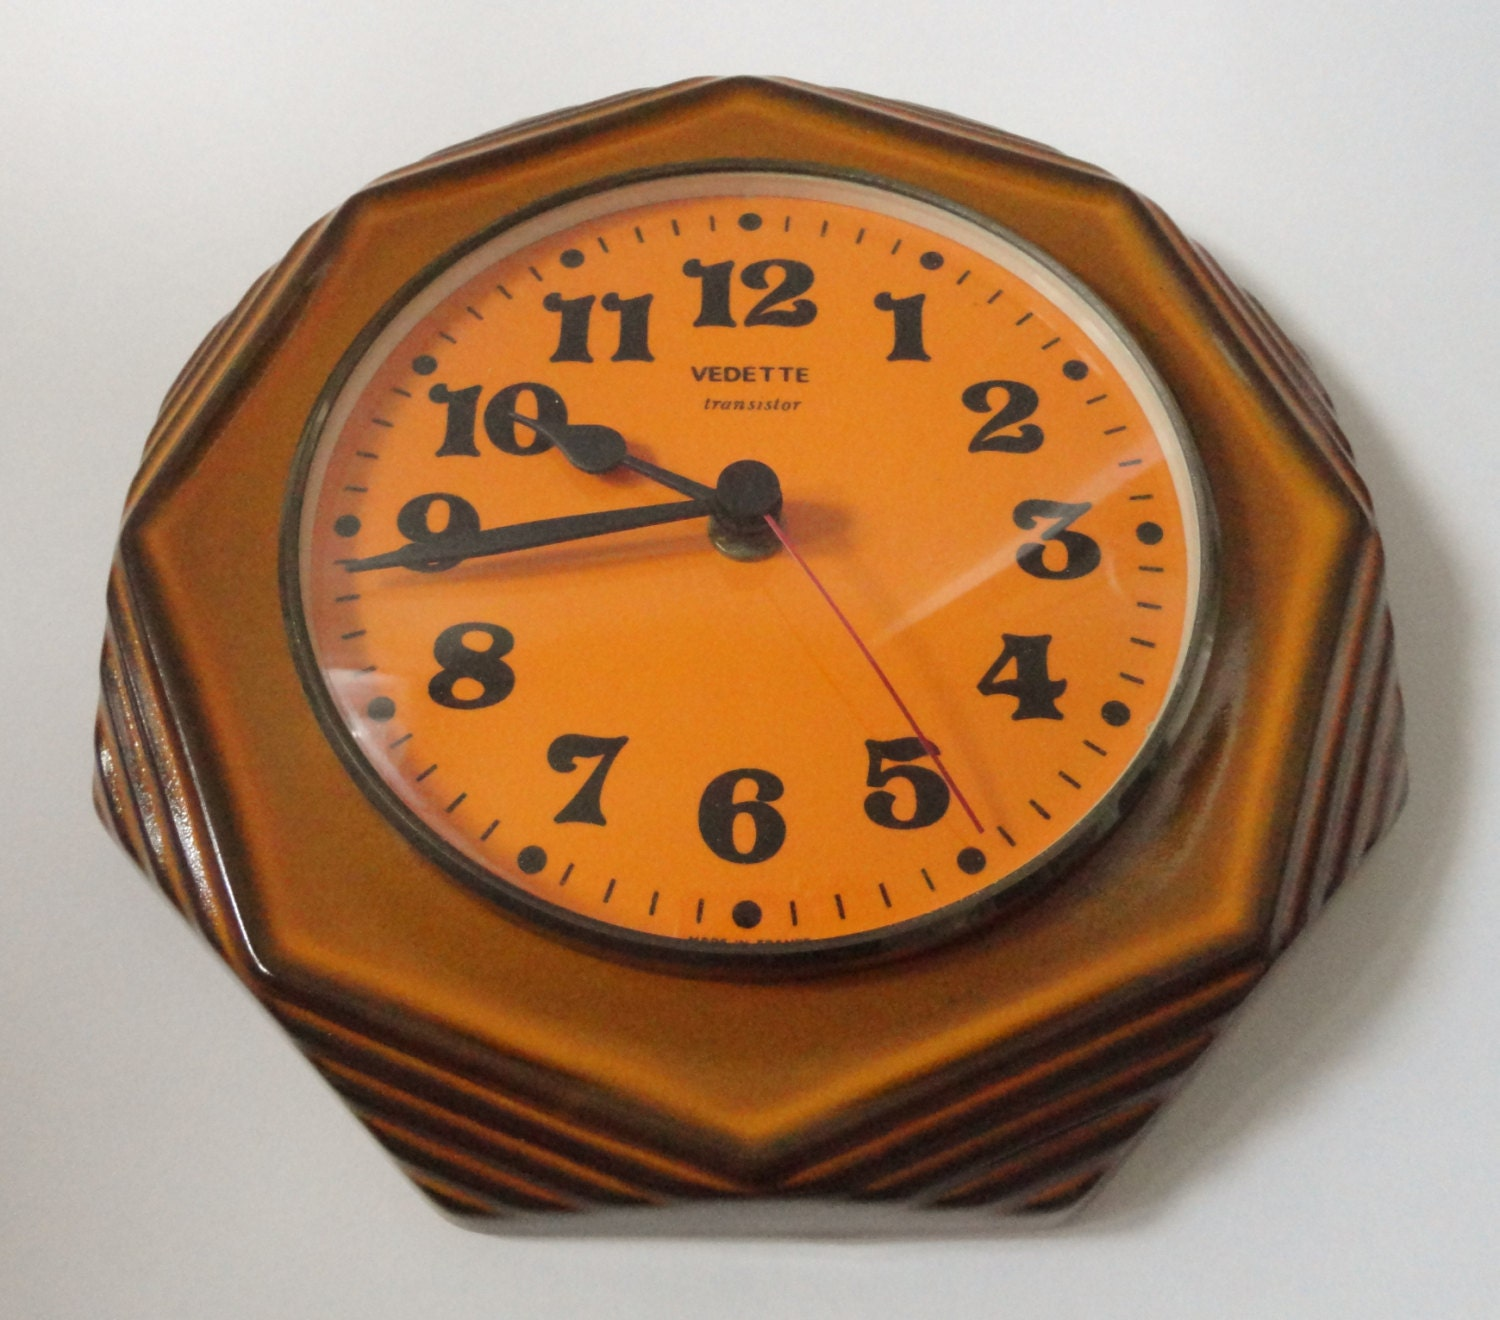 60s vintage kitchen wall clock vedette transitor made in